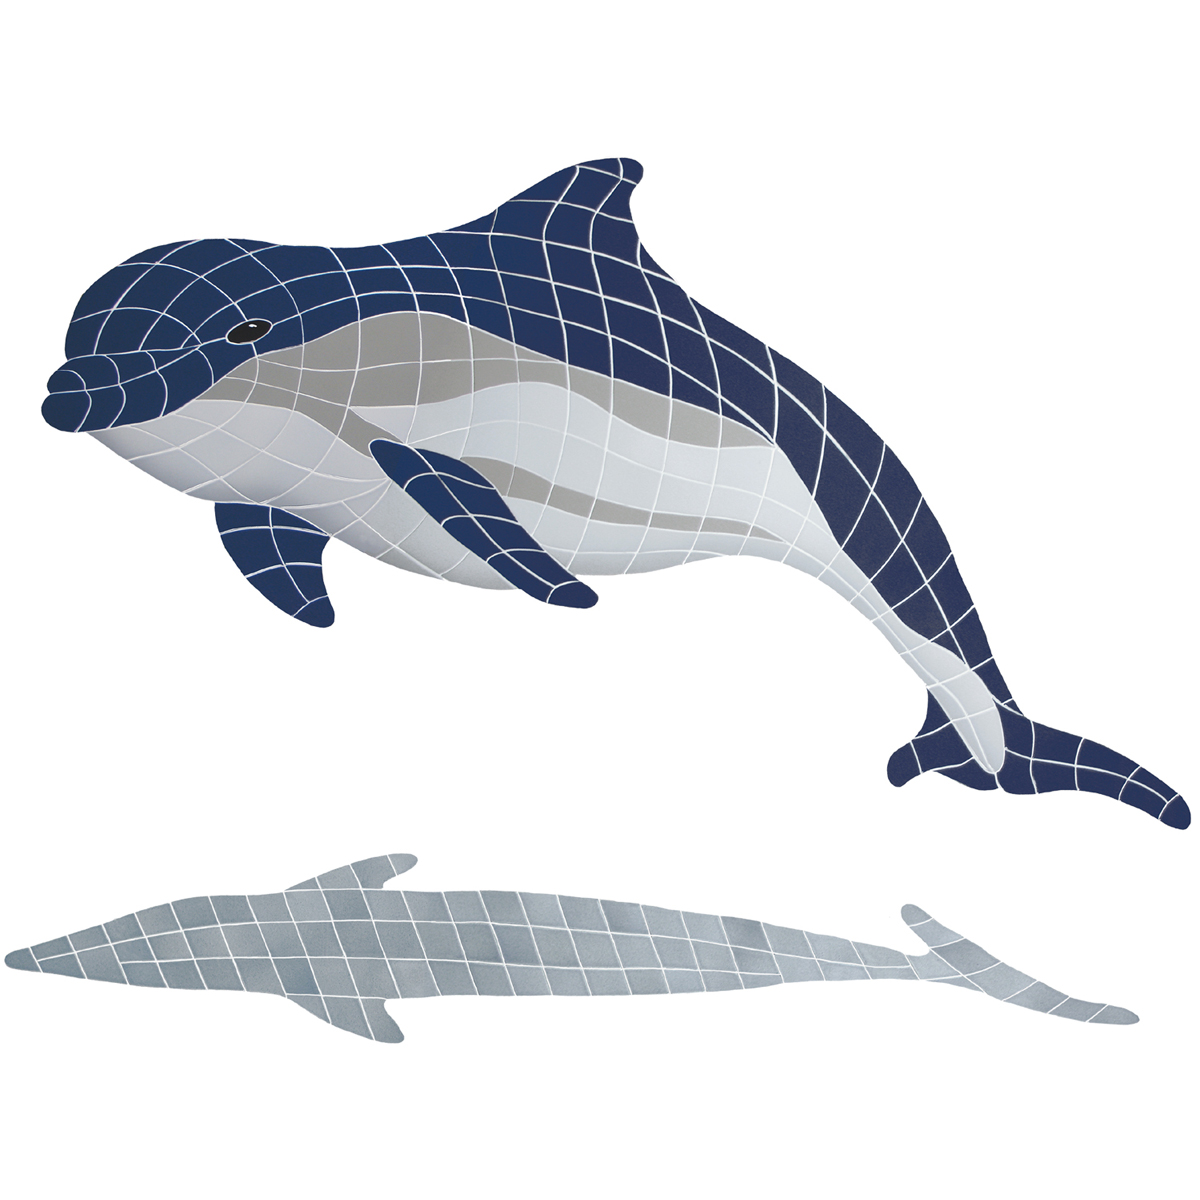 "Bottlenose Dolphin Up with Shadow Ceramic Mosaic Swimming Pool Mural 40"" x 51"", 1 piece"